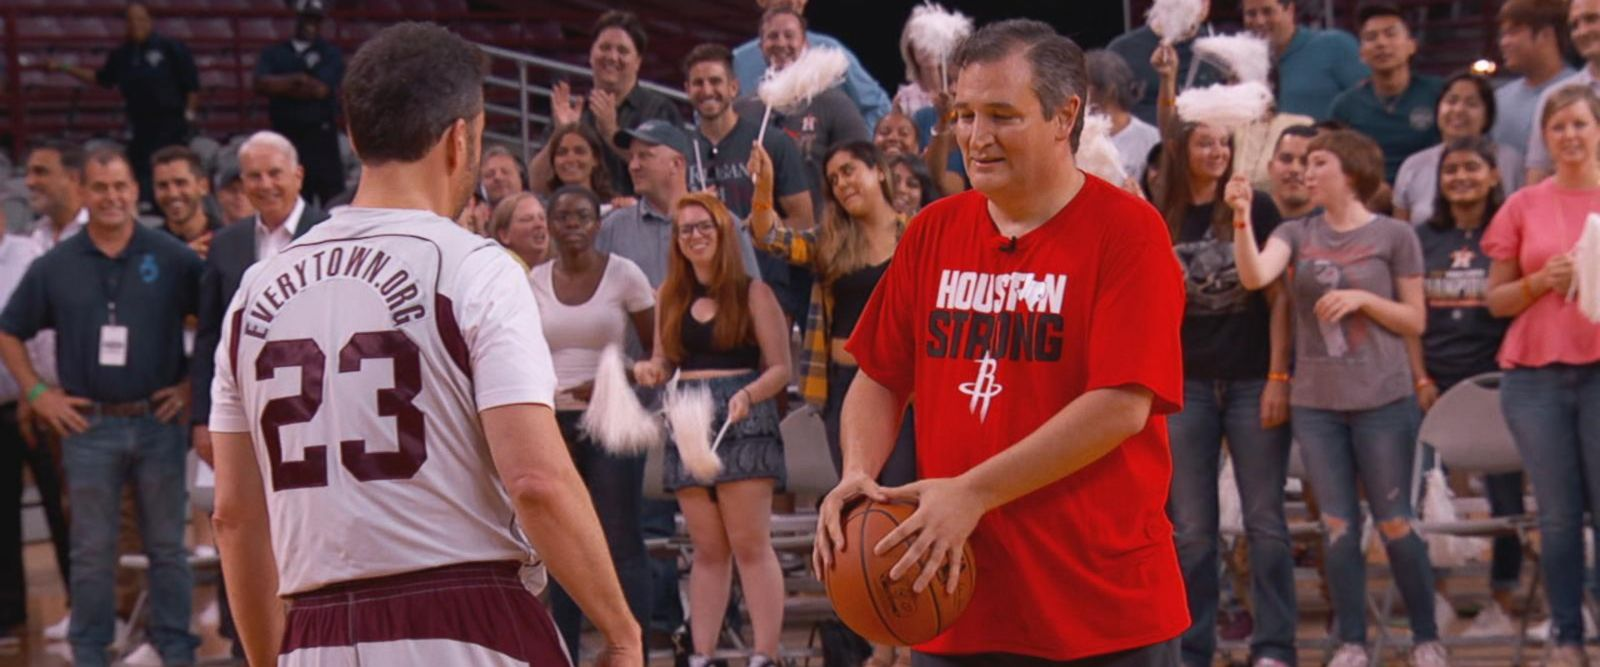 VIDEO: Jimmy Kimmel goes one-on-one again with Ted Cruz